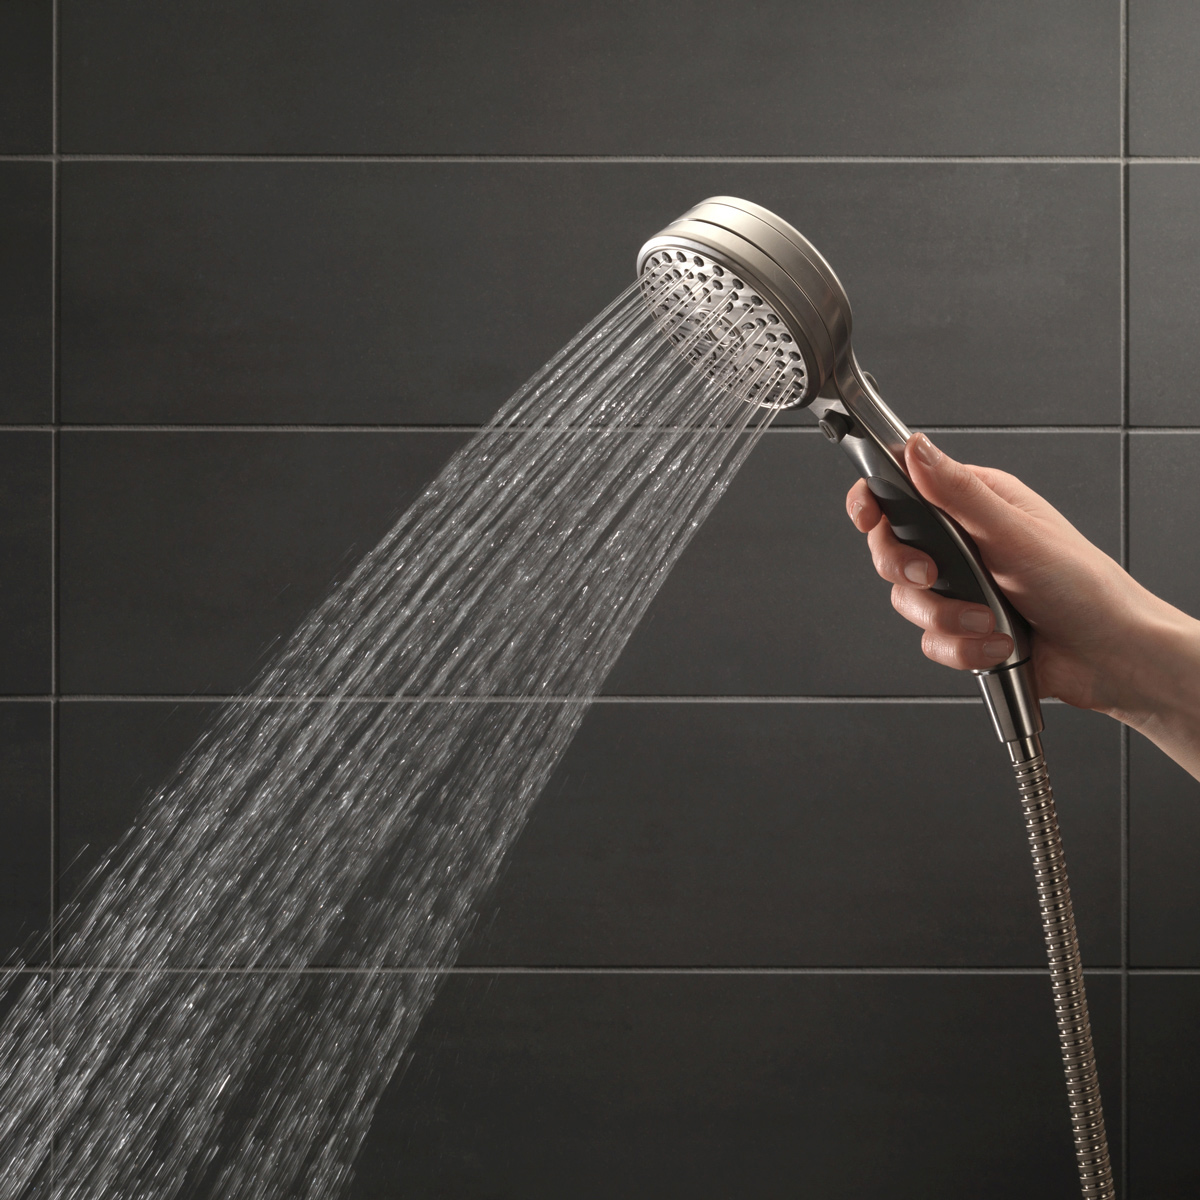 how to fix leaking shower head connection